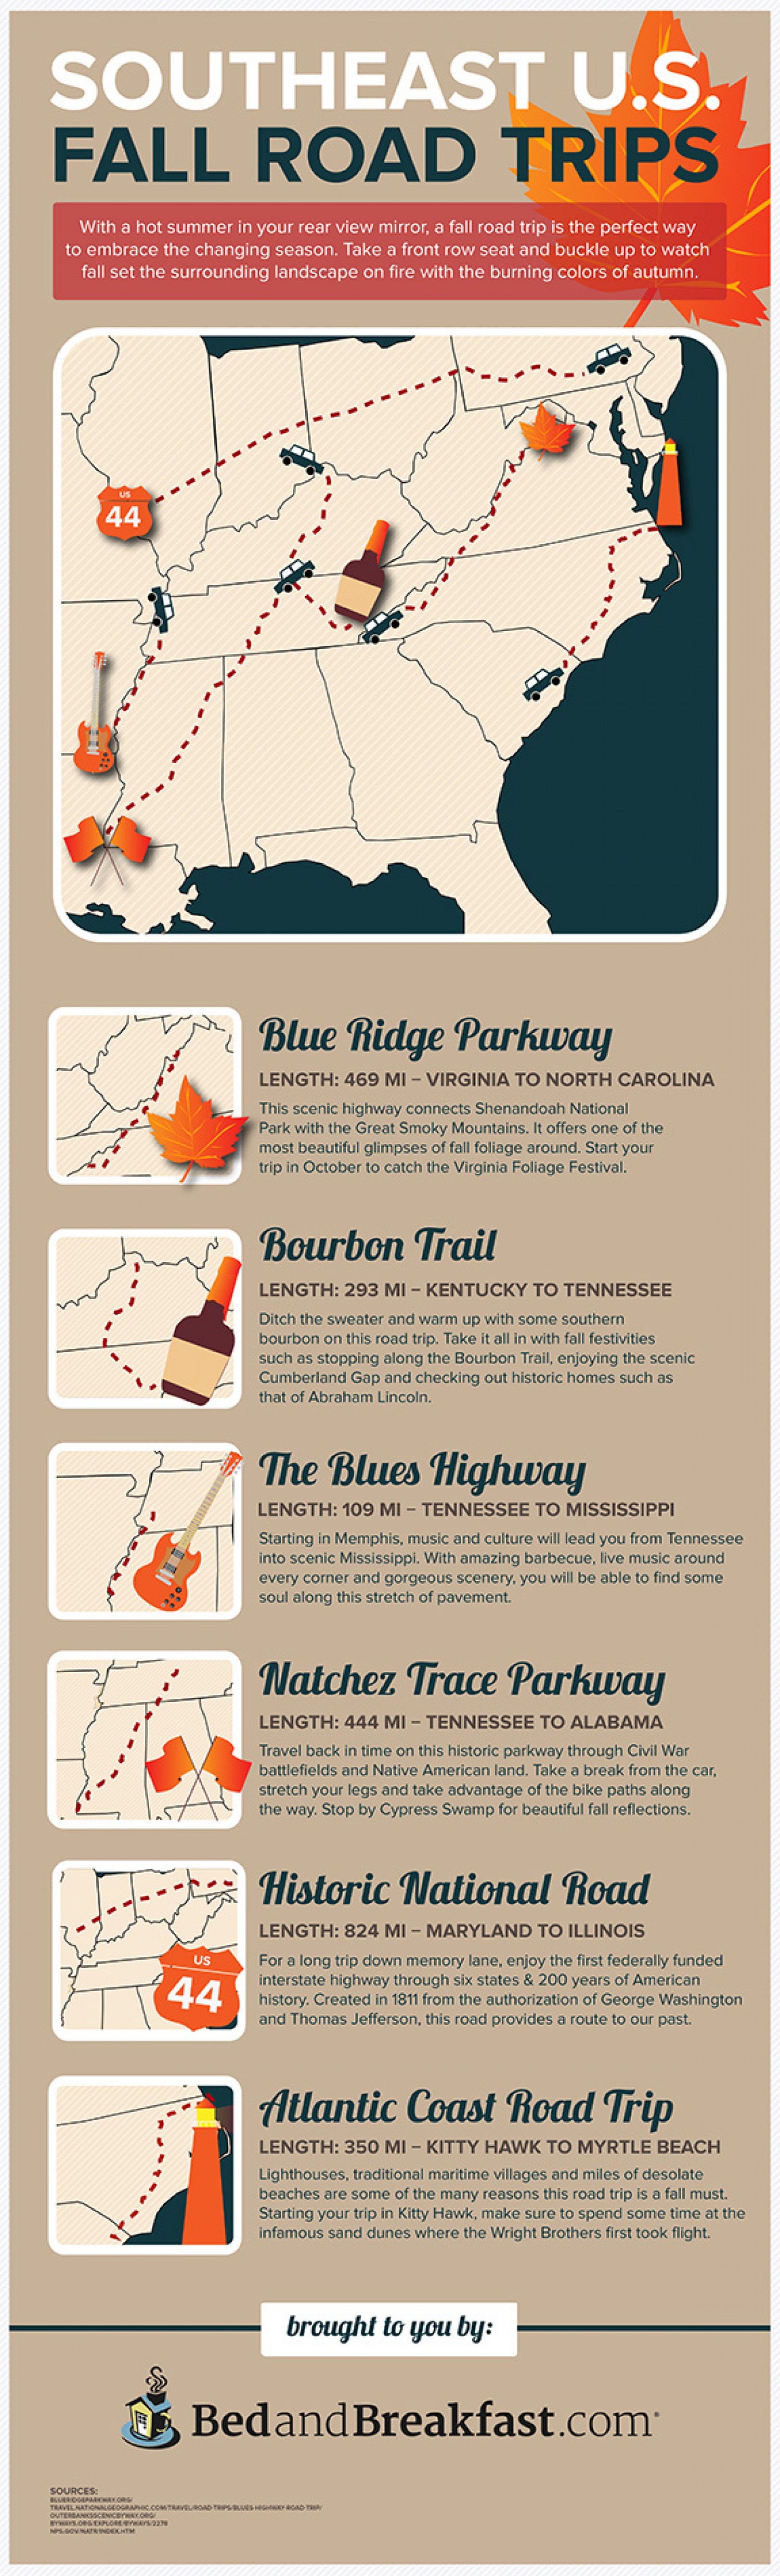 Southeast U.S. Fall Roadtrips Infographic